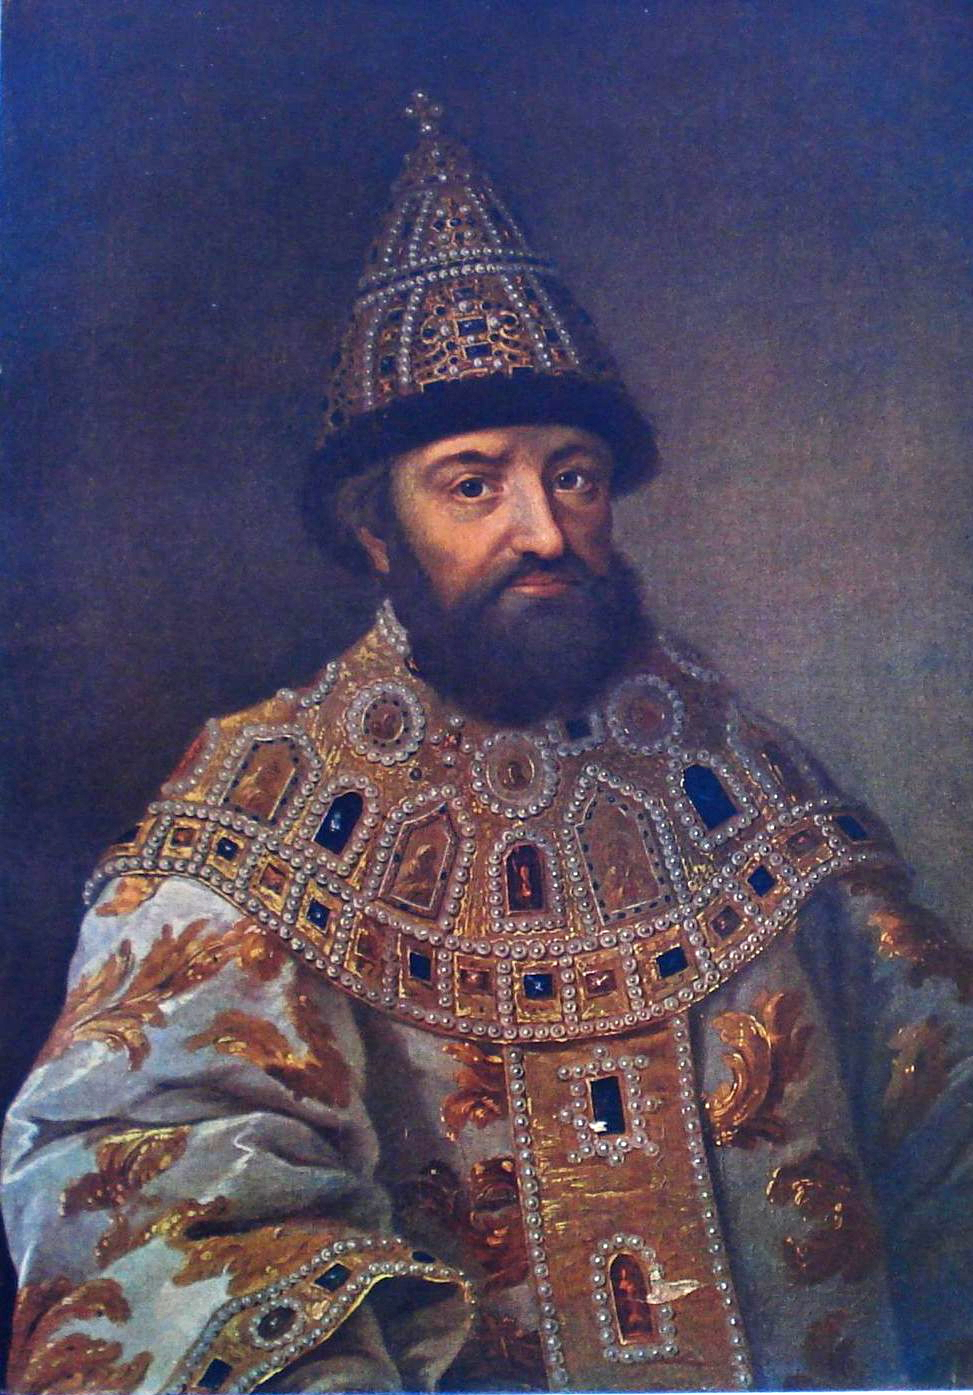 https://upload.wikimedia.org/wikipedia/commons/b/b5/Michail_I._Romanov.jpg